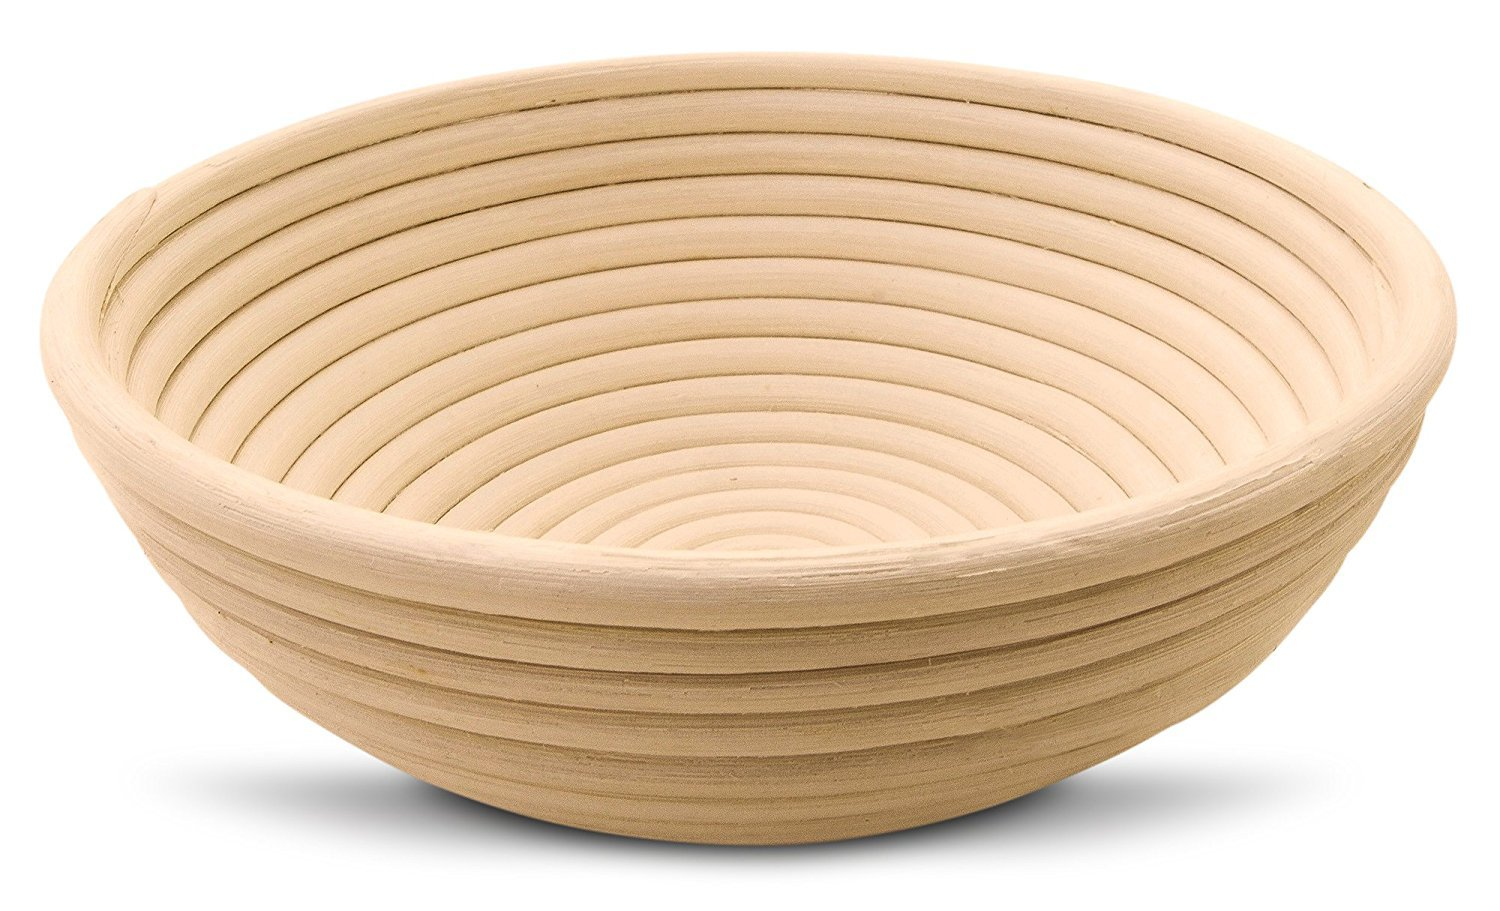 9'' Inch Round Banneton Proofing Basket for Artisan Bread And Dough. E-Book Included With Instructions, Ideas And Recipes. Eco-Friendly Rattan Cane Brotform With Rising Pattern For Artisan Baking. by Pingo Gear